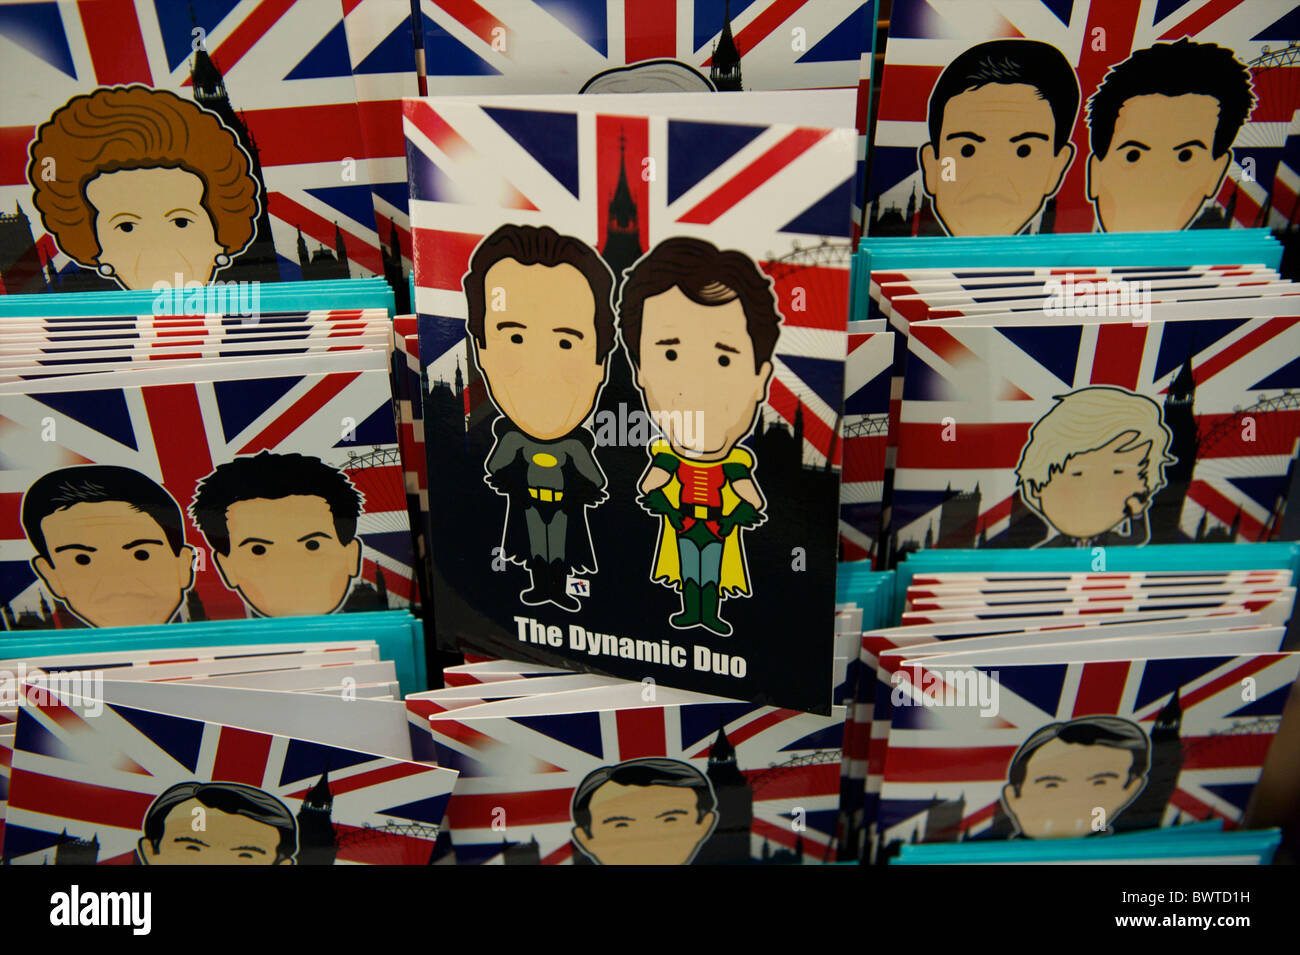 Greeting cards with cartoon depictions of prominent British politicians are on sale as souvenirs in a giftshop on - Stock Image